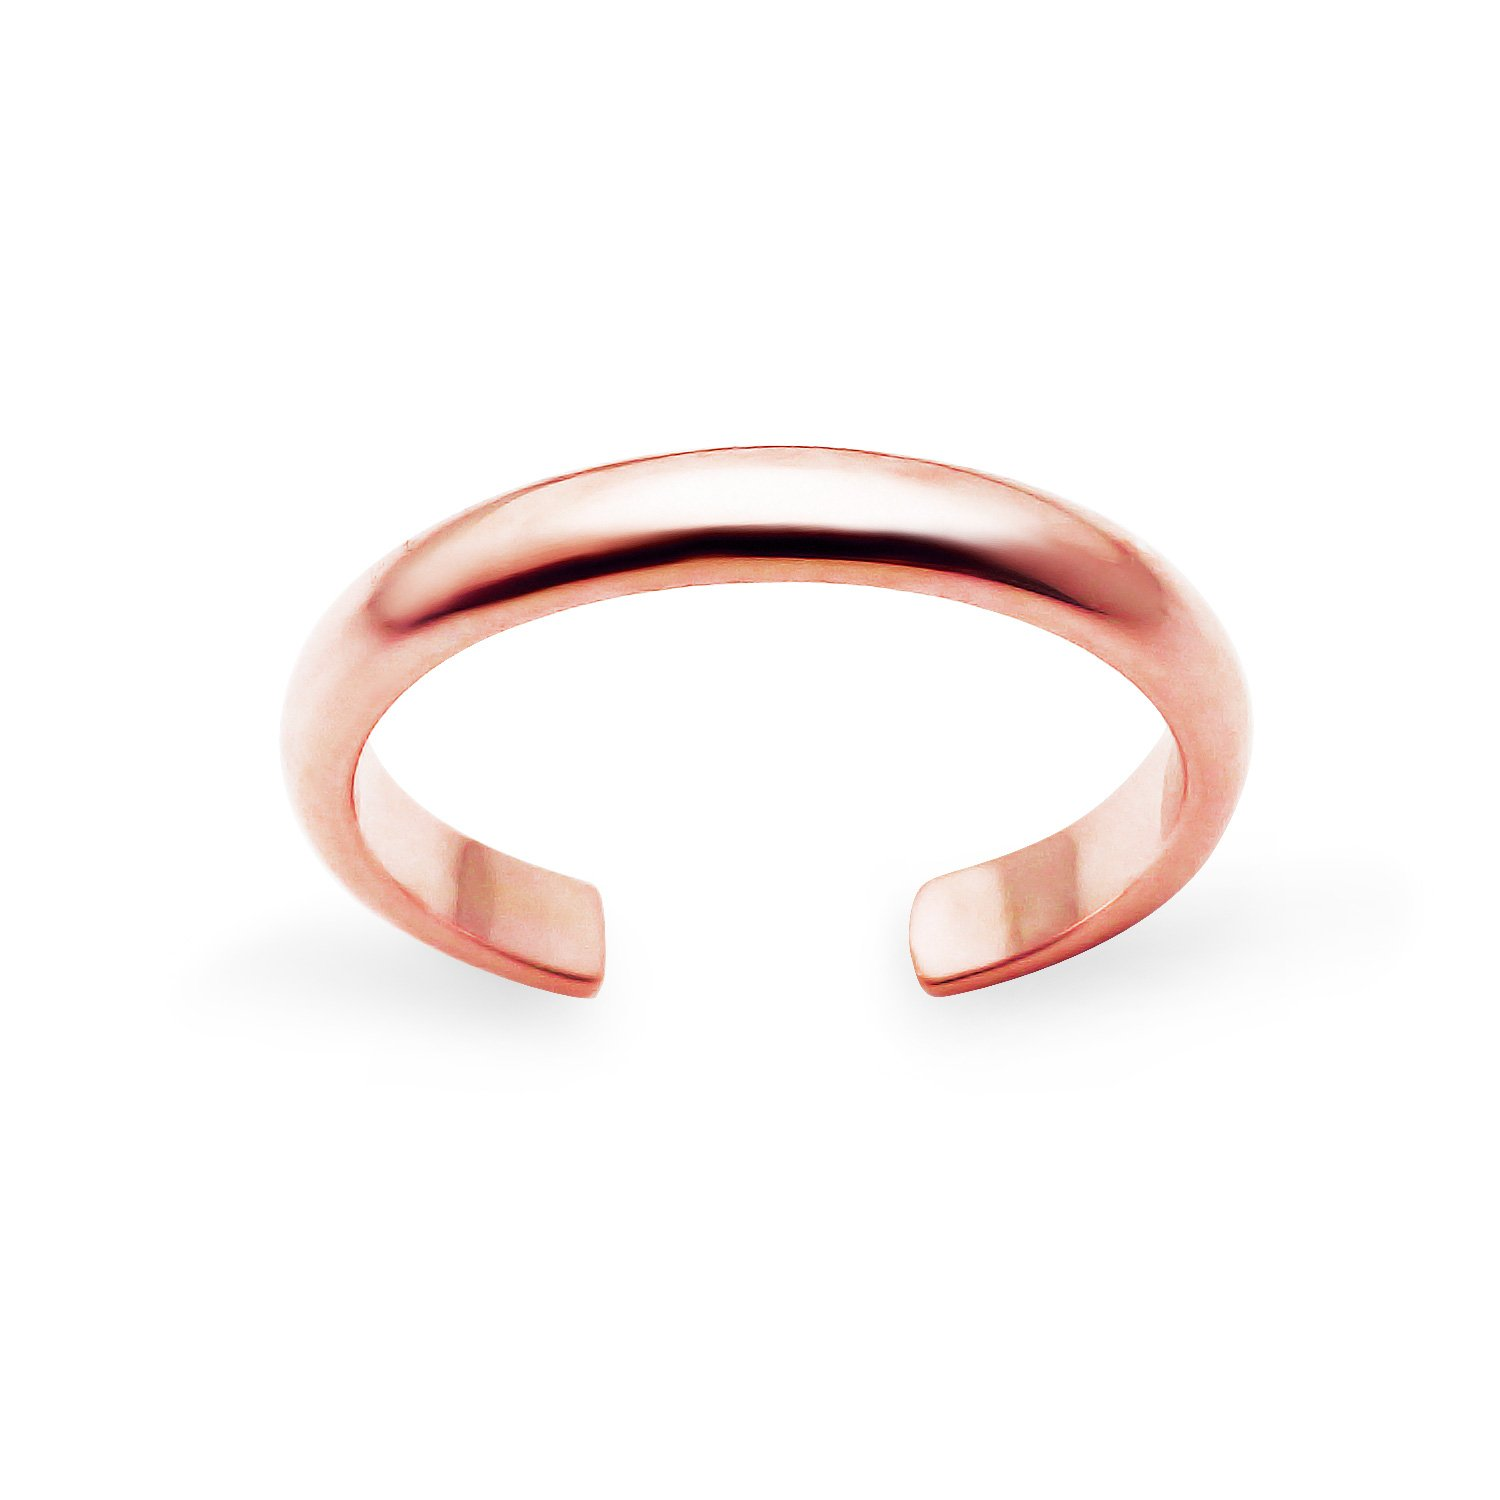 Rose Gold Flashed Sterling Silver High Polished Plain Simple Adjustable Toe Ring by River Island Jewelry